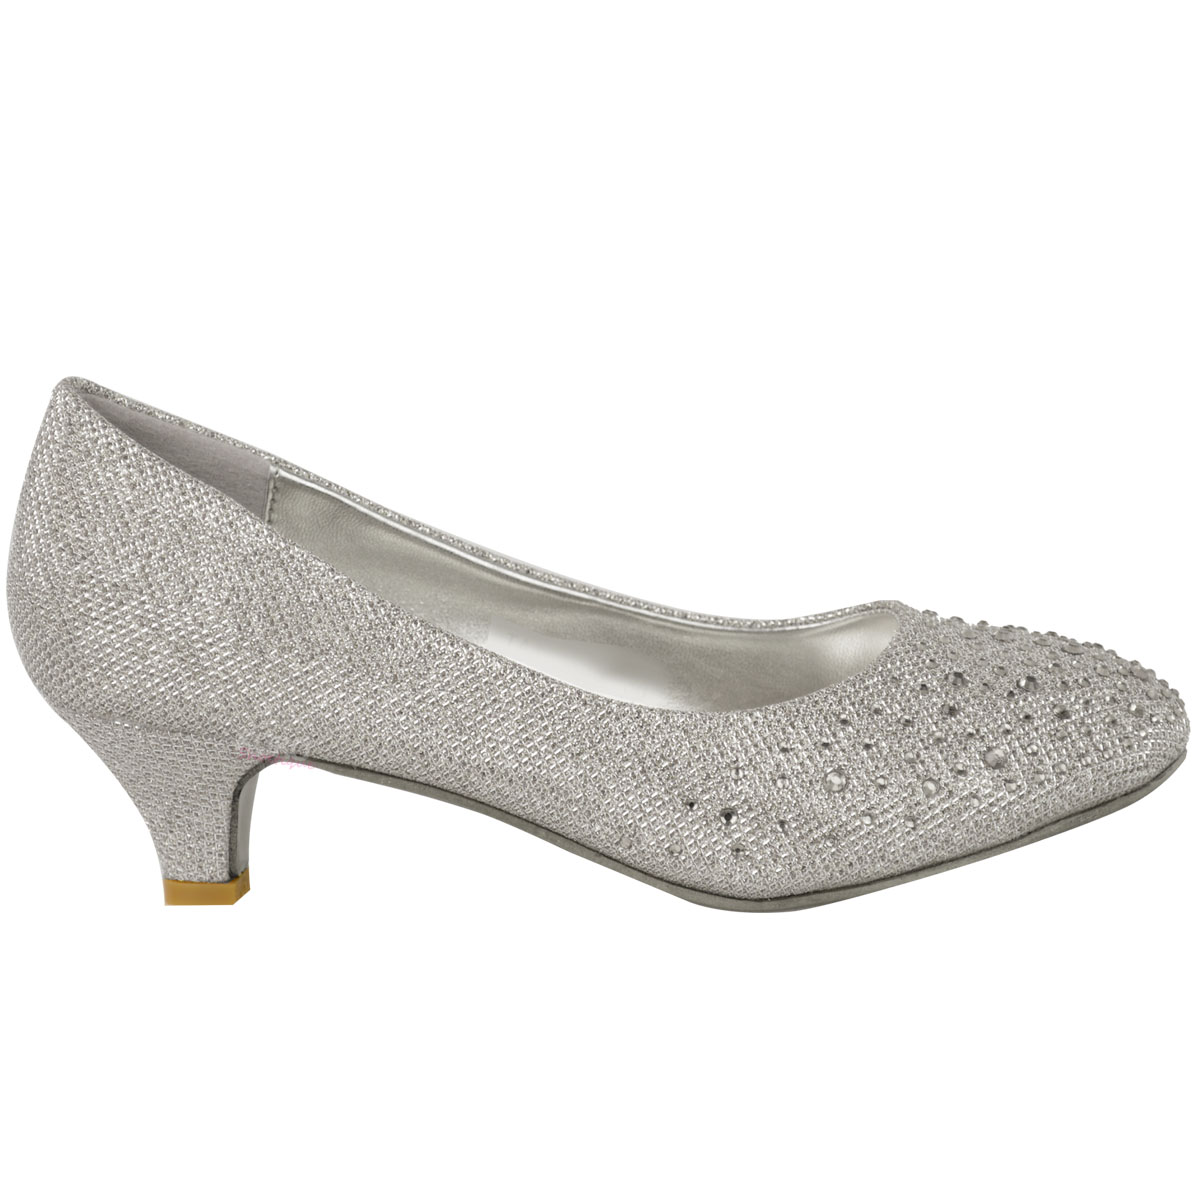 Grey Kitten Heel Pumps moiFyW2U